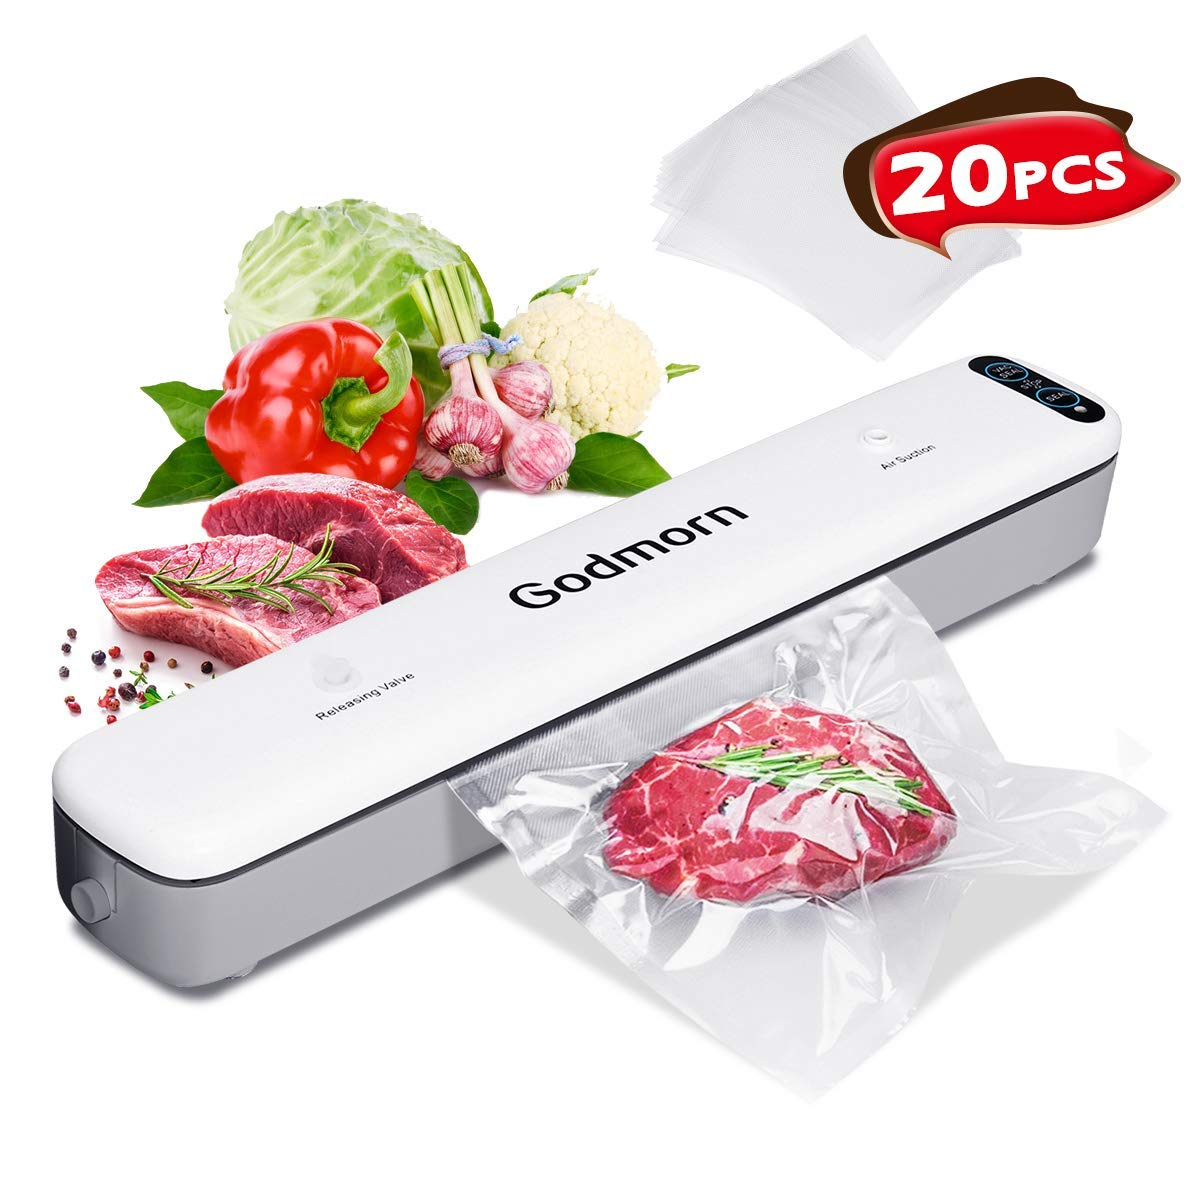 Vacuum Sealer Machine Food Godmorn Foodsaver Dry / Wet Moist, One-Touch Automatic Hands-free, 12 Seal Width Doubel-Mode Vacuum Packing Machine with 20Pcs BPA-Free Seal Bags and Vacuum Canister Hose for Meat, Vegetables, Fruit , Jewelry Storage Ovemiliya